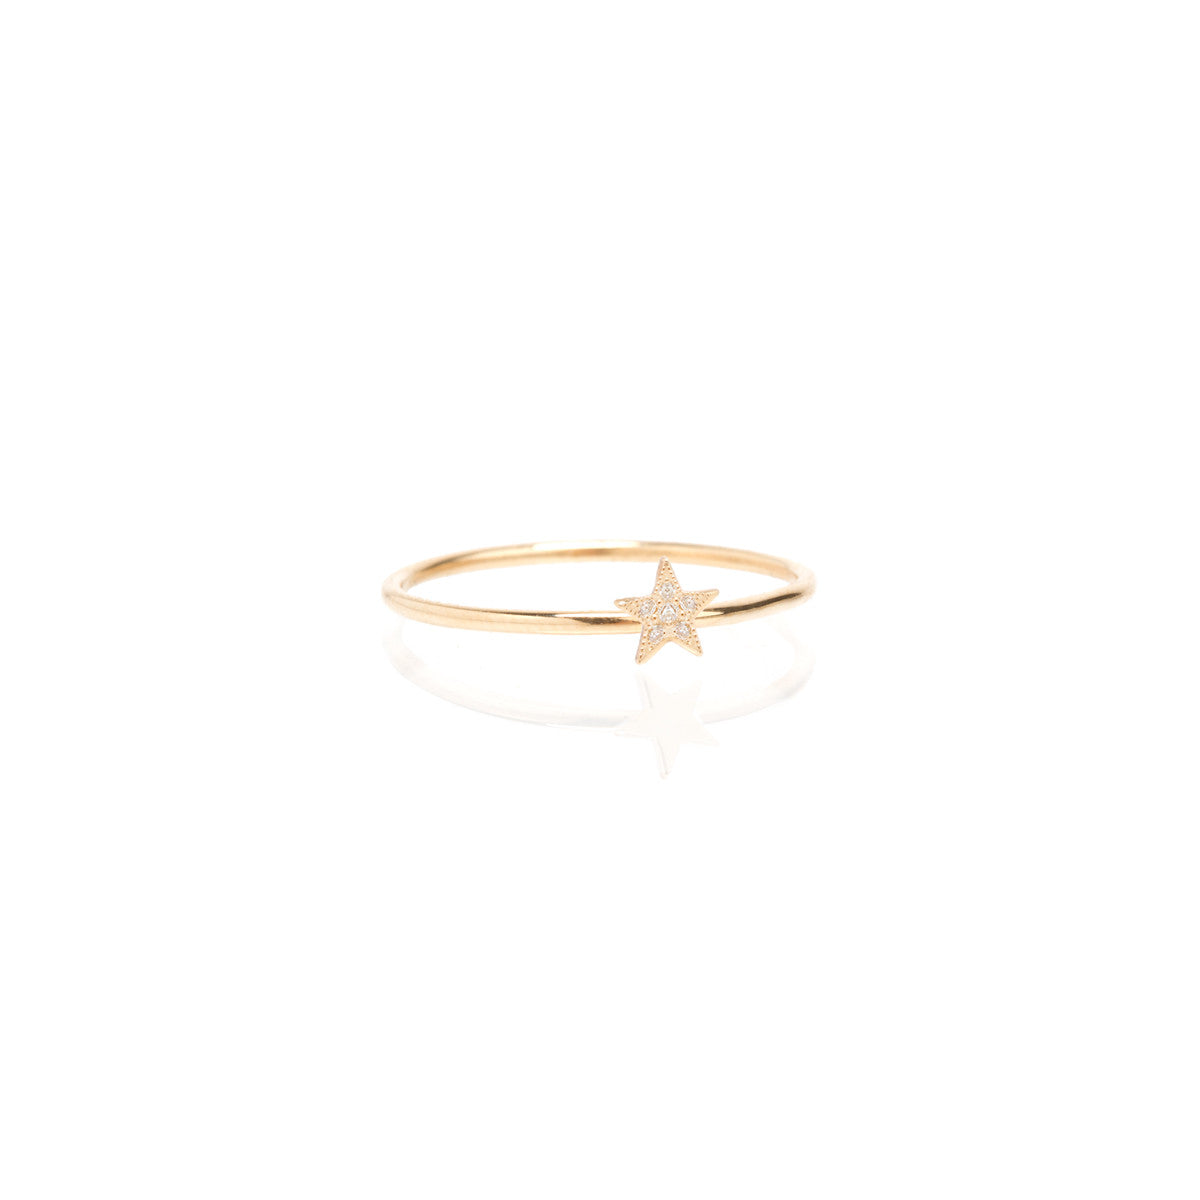 Zoë Chicco 14kt Yellow Gold Itty Bitty Pave Star Ring